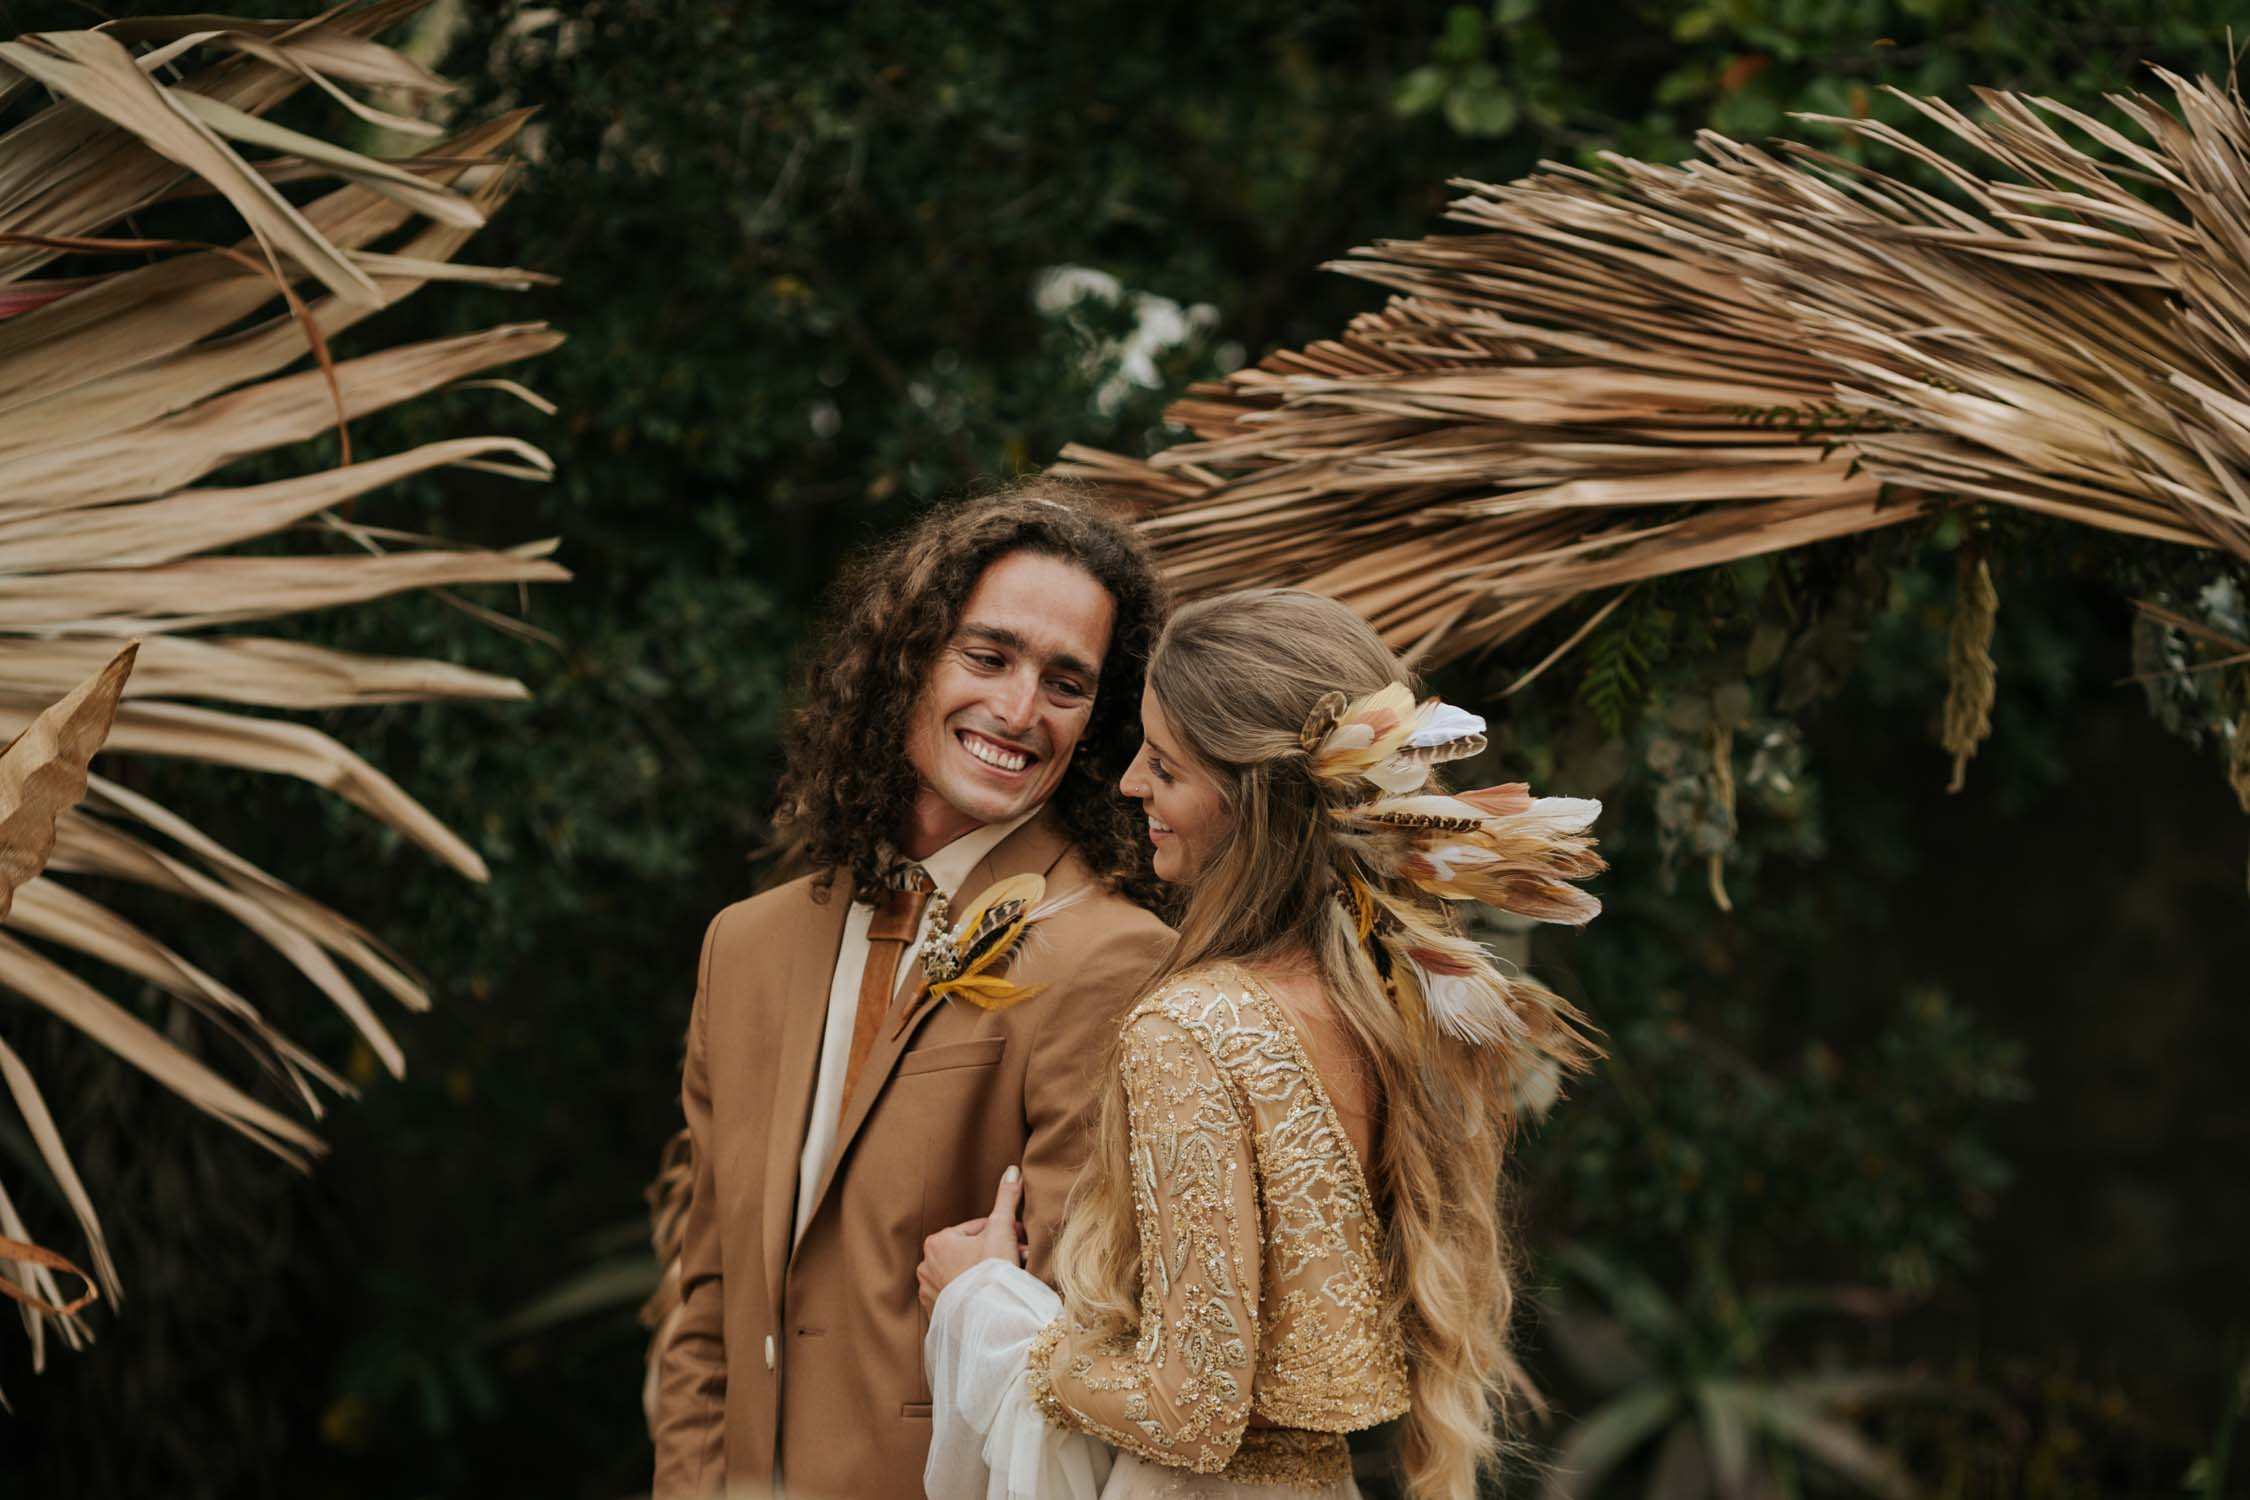 Good looking long haired bohemian gypsy wild and free wedding couple